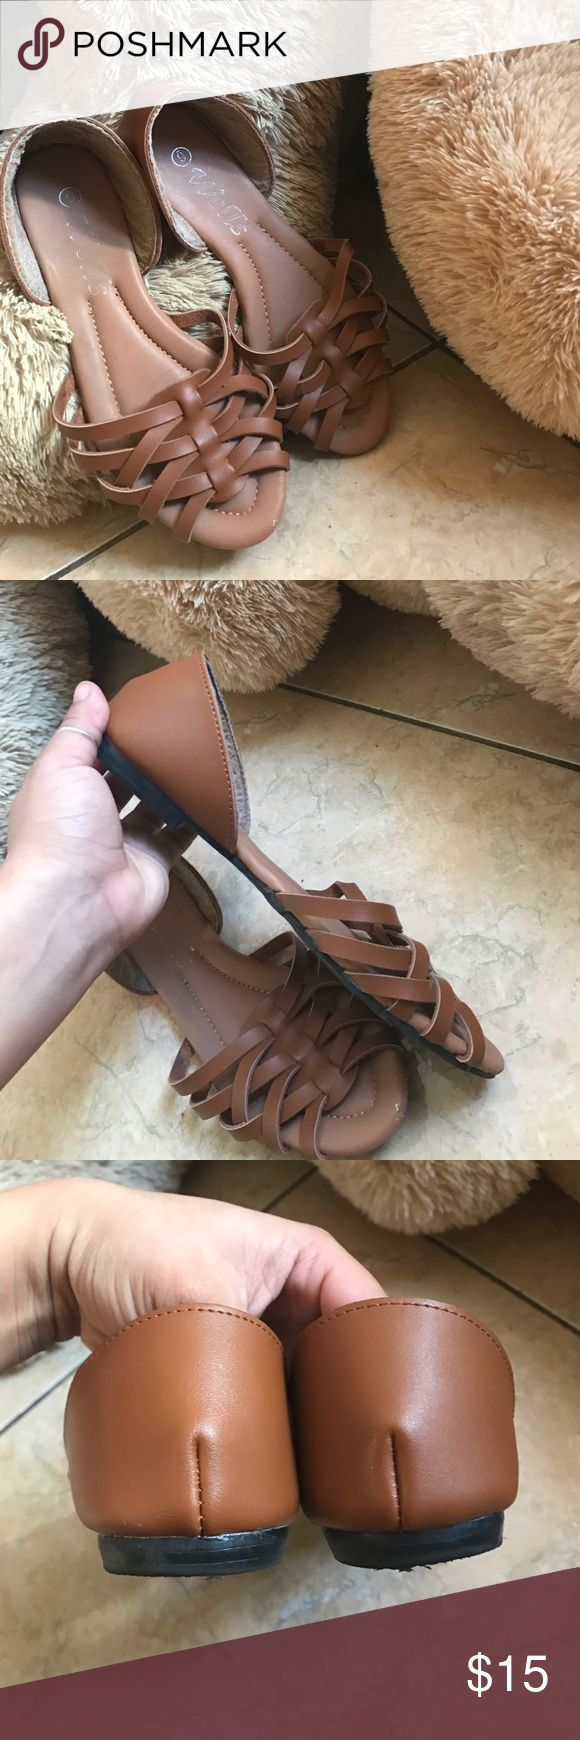 Brown Flats Used once still in good condition Put under American Eagle for popularity ✨ American Eagle Outfitters Shoes Flats & Loafers